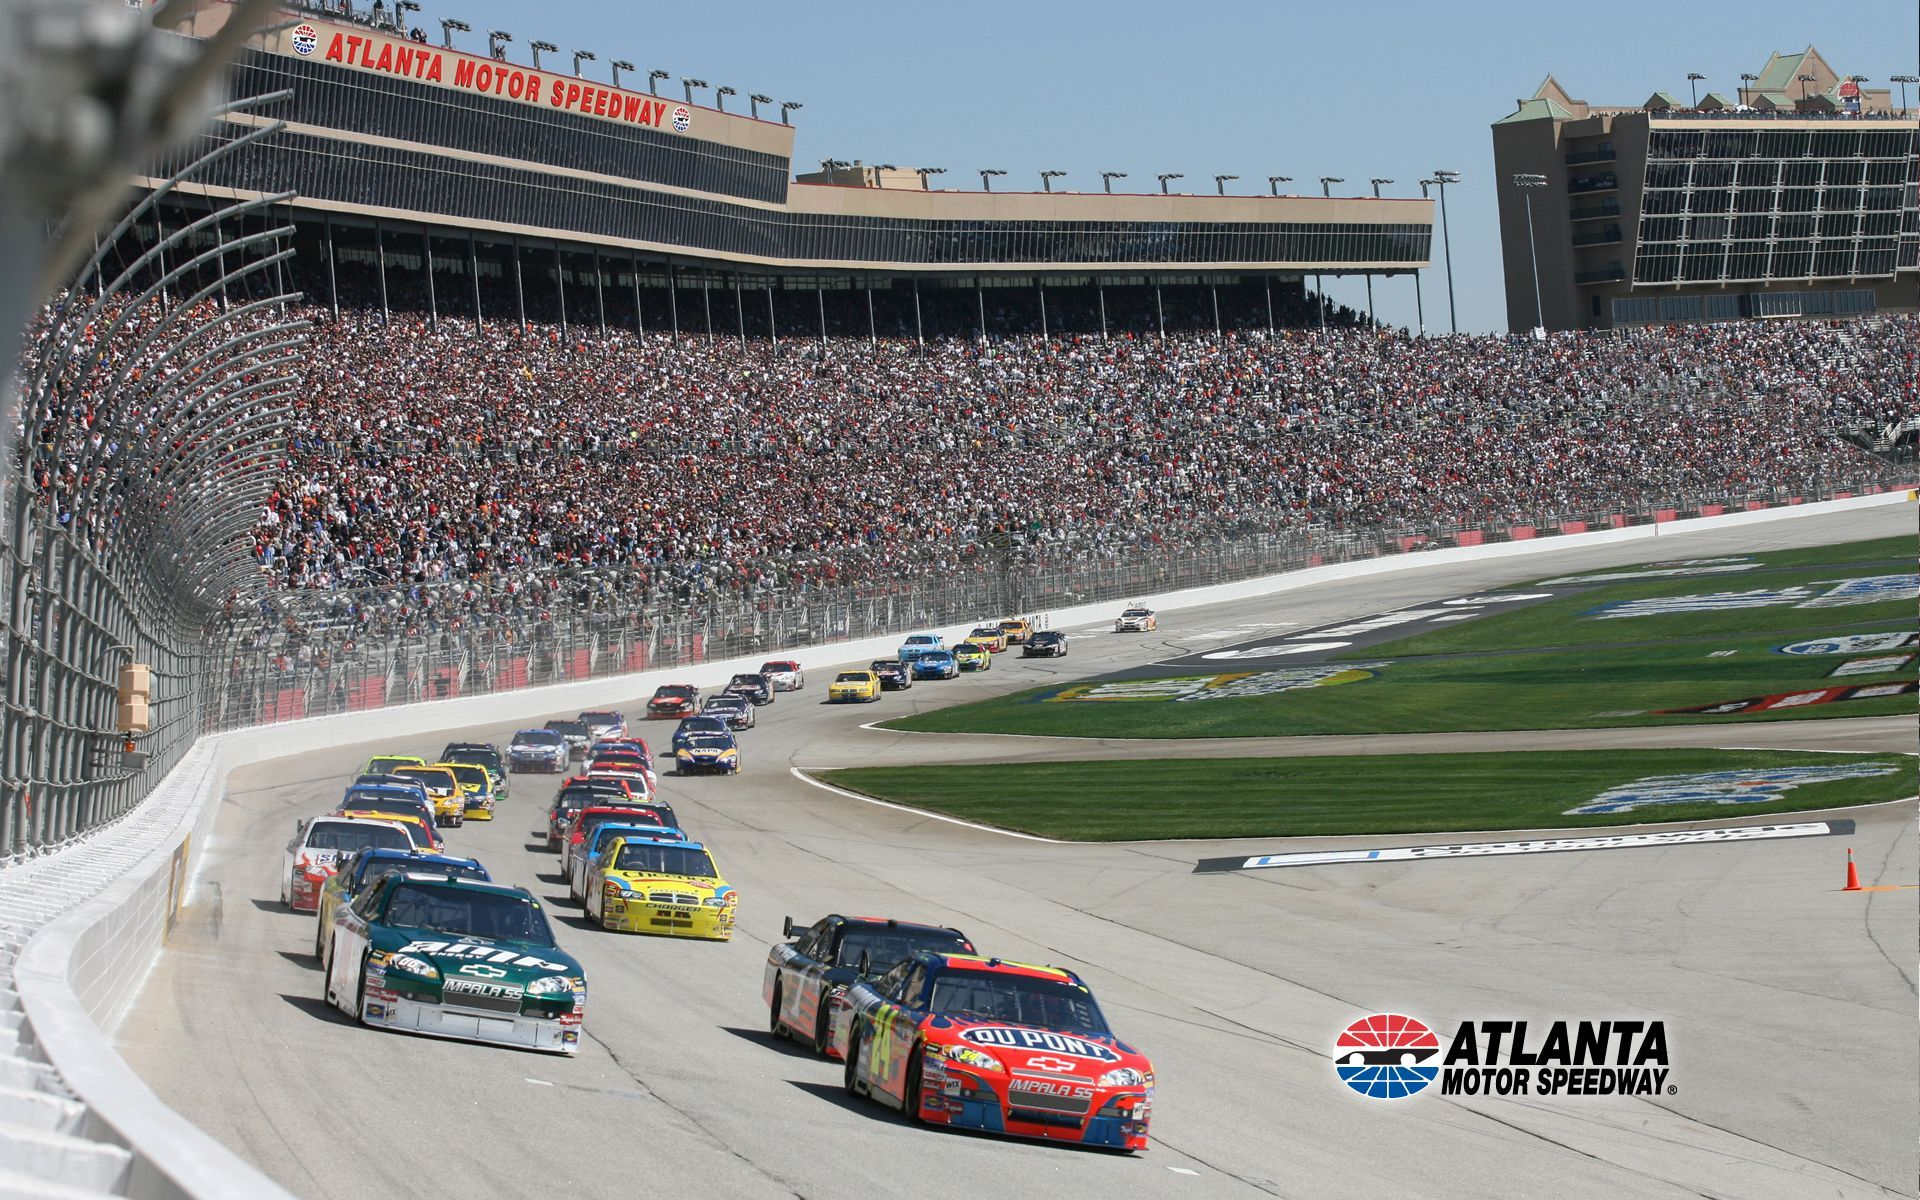 2014 Oral-B USA 500 Odds & Picks